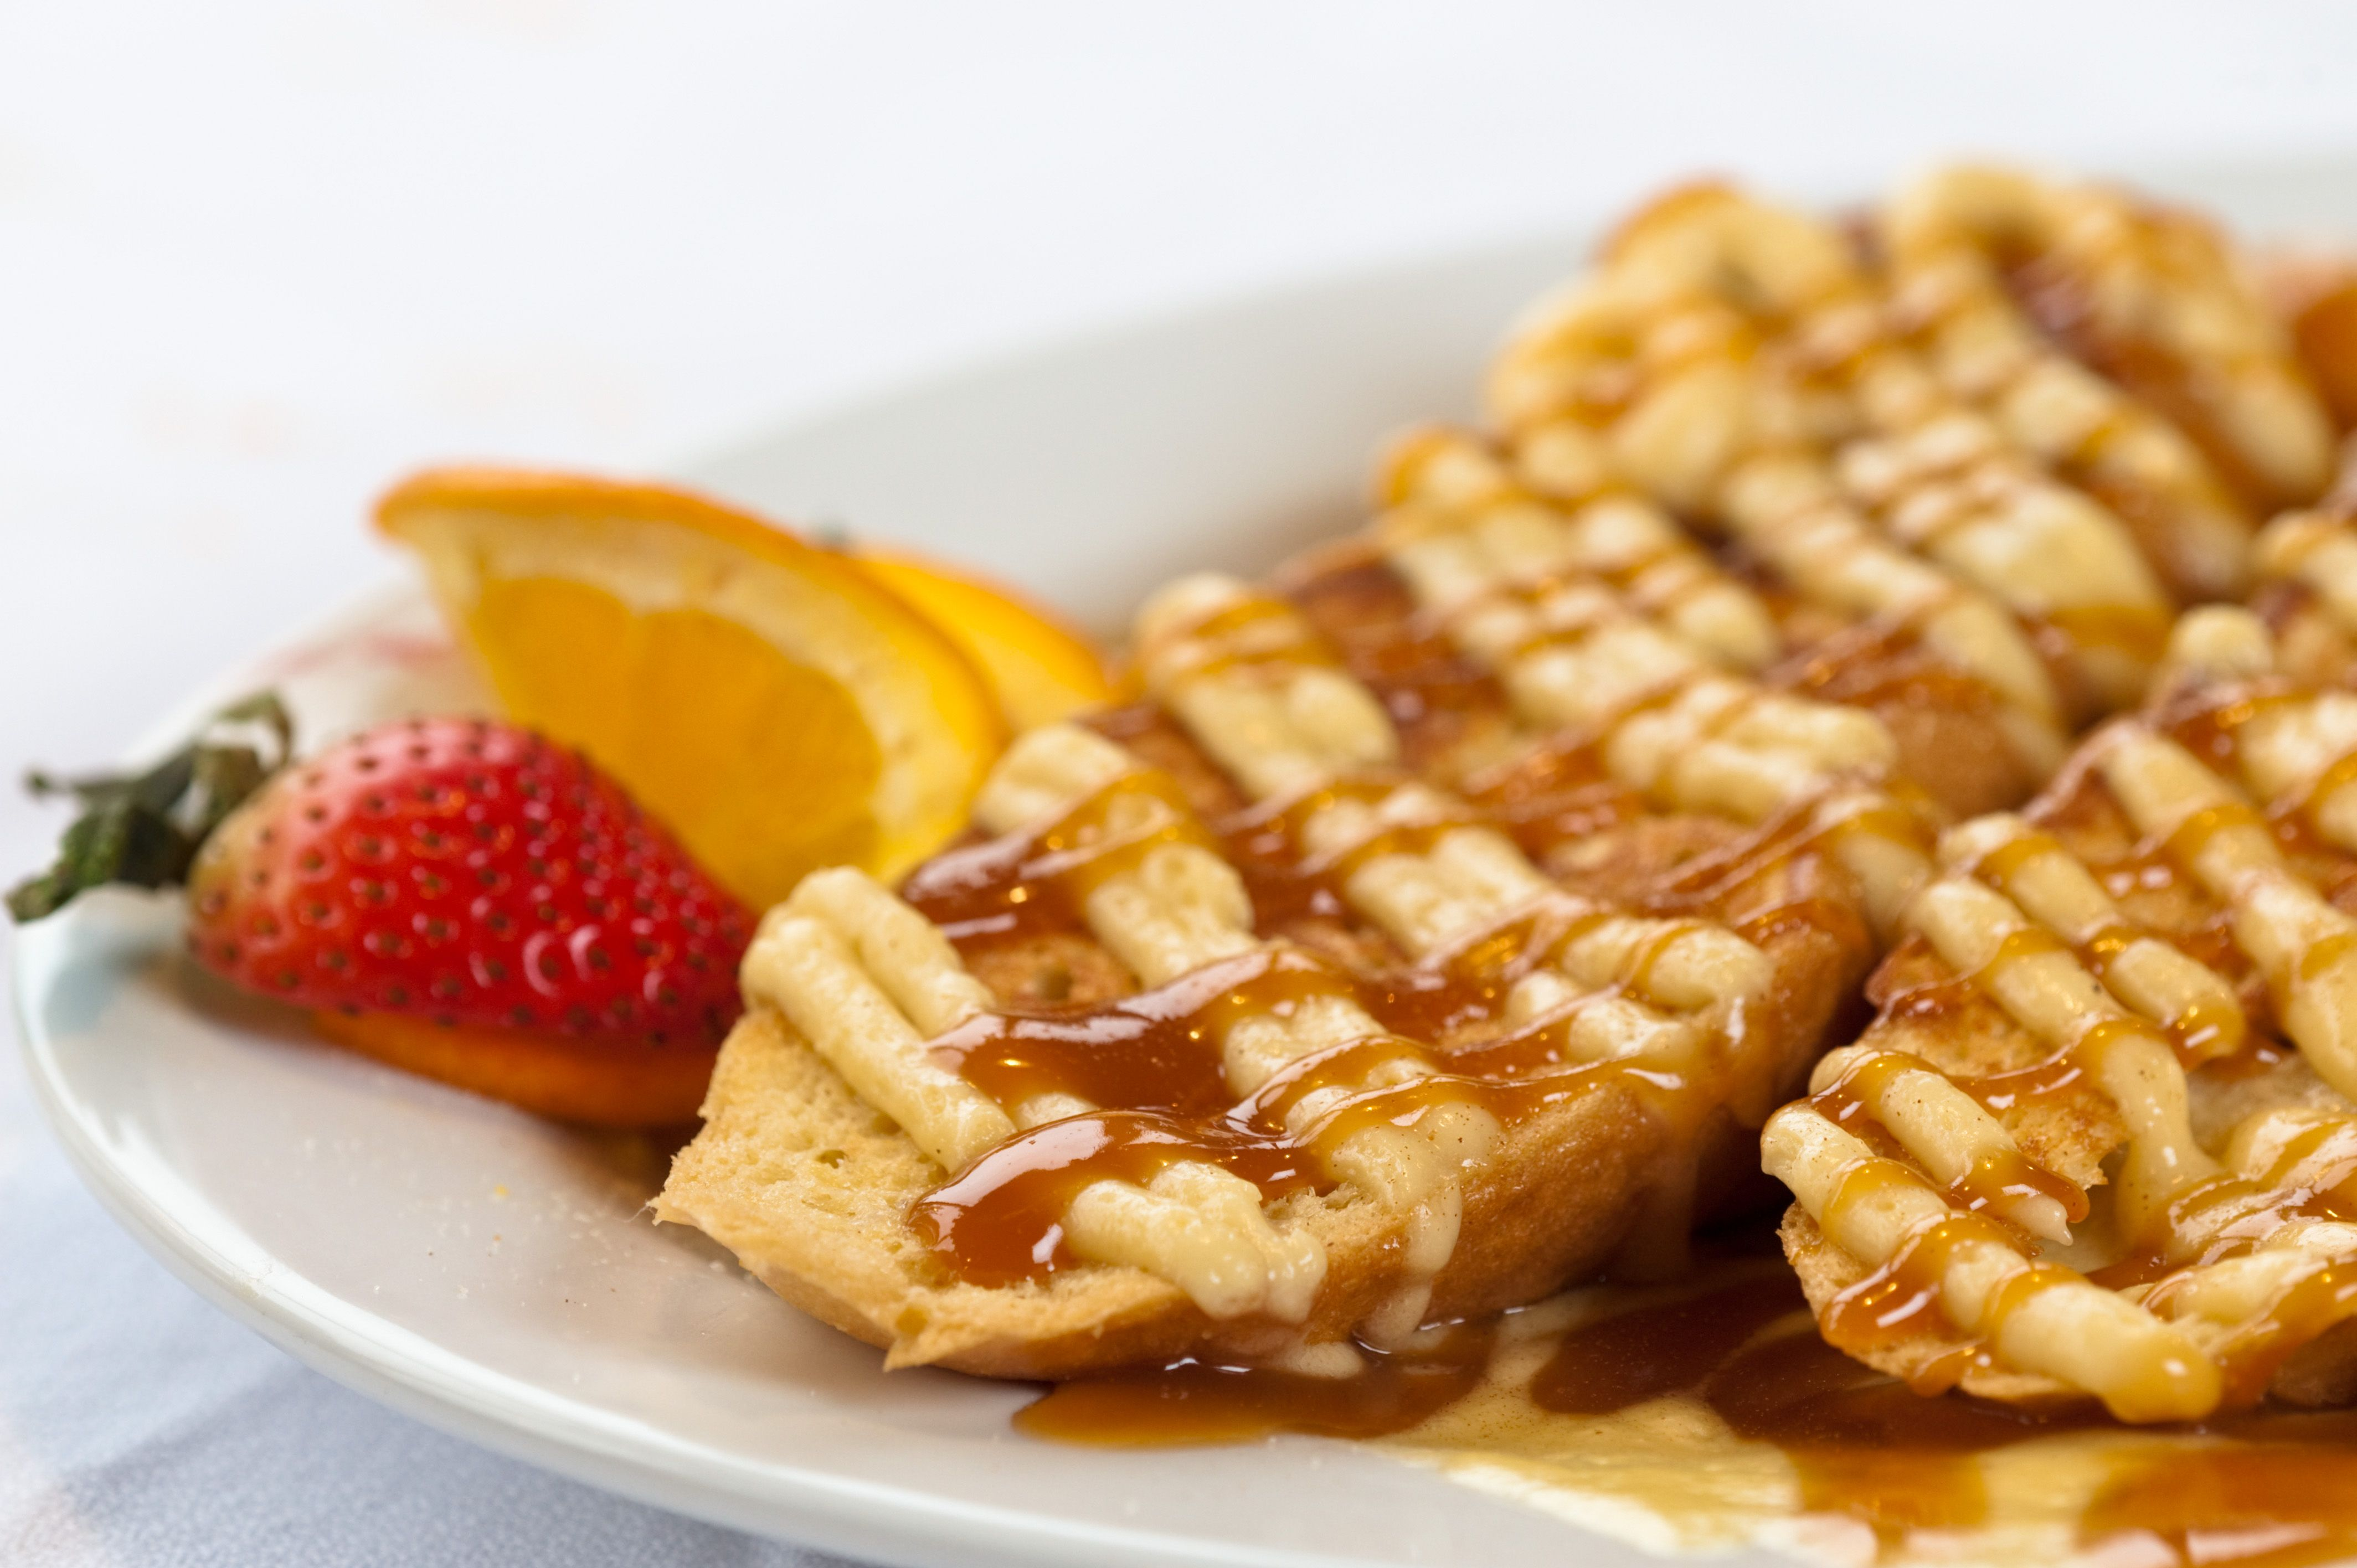 crème brulee french toast at stack u0027s of hilton head located on